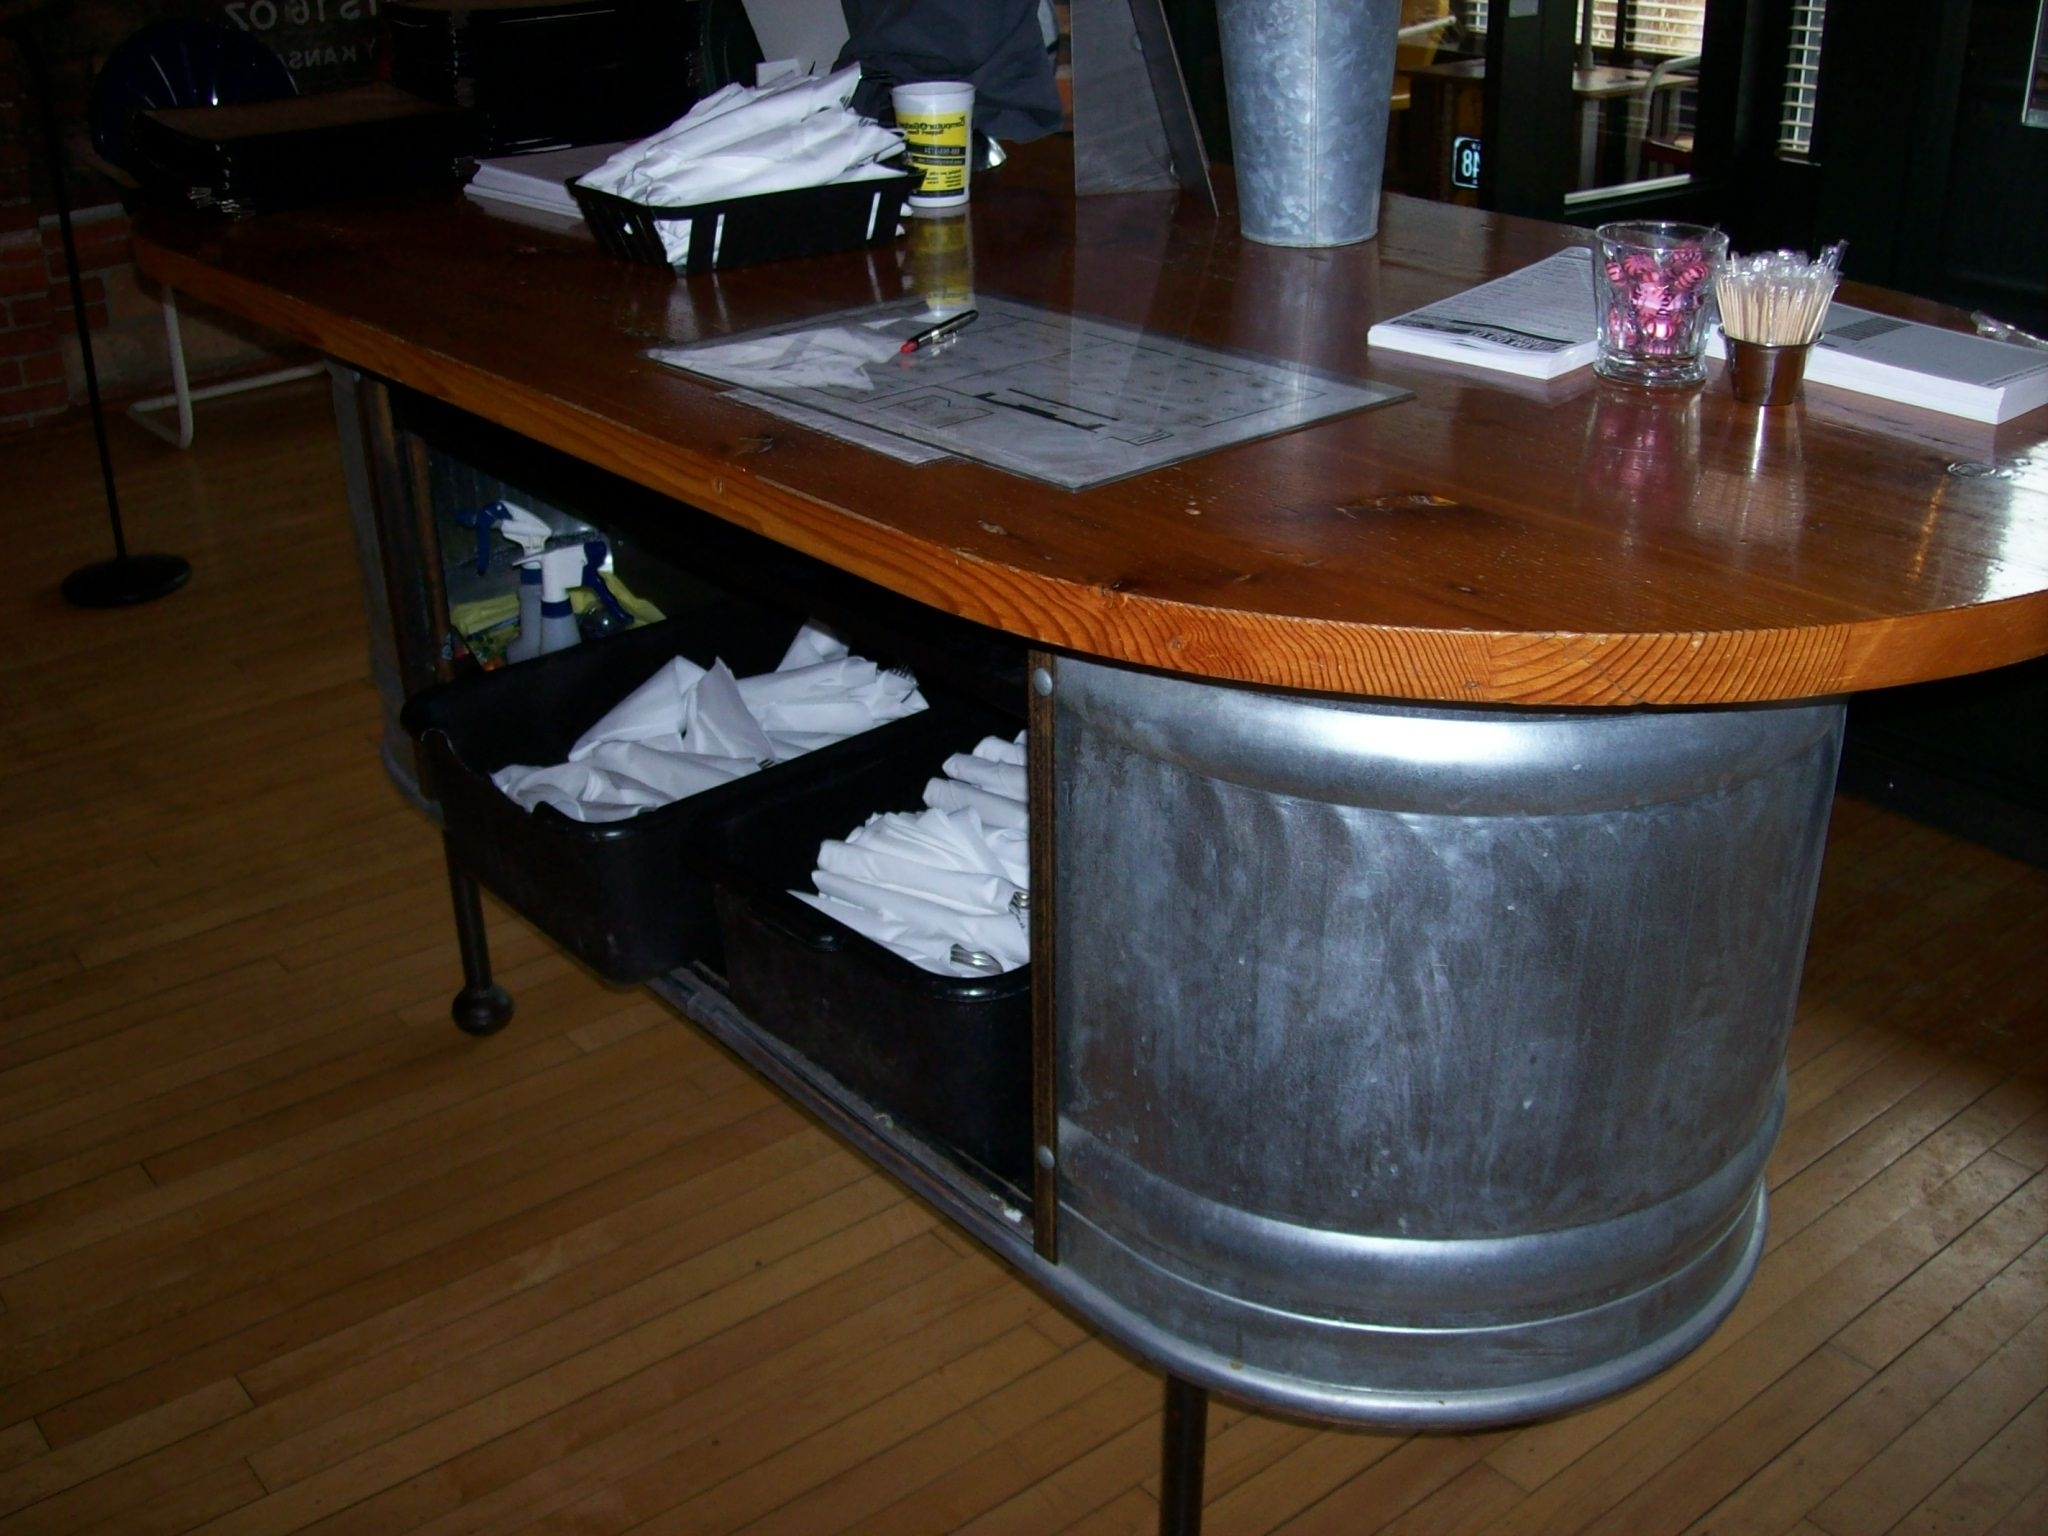 Great Way To Create A Hostess Station Or Check Out Area